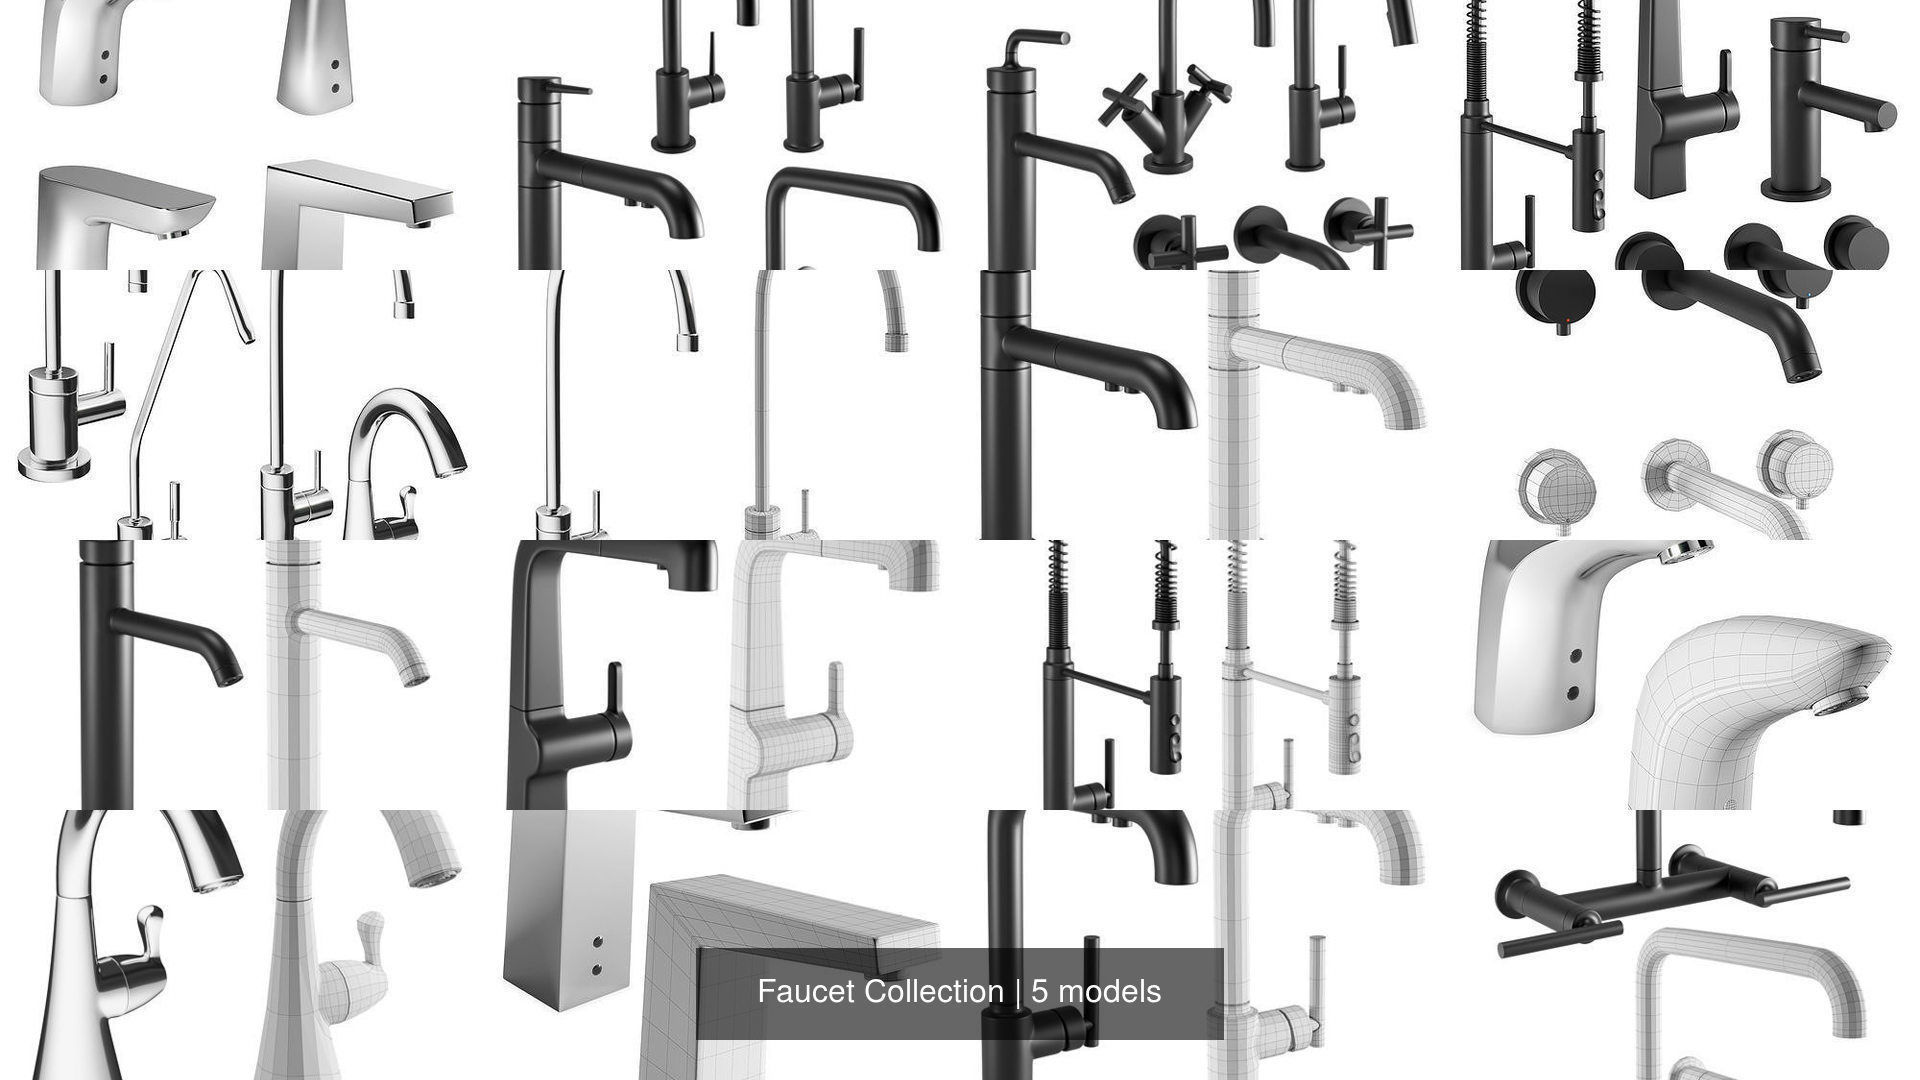 Faucet Collection